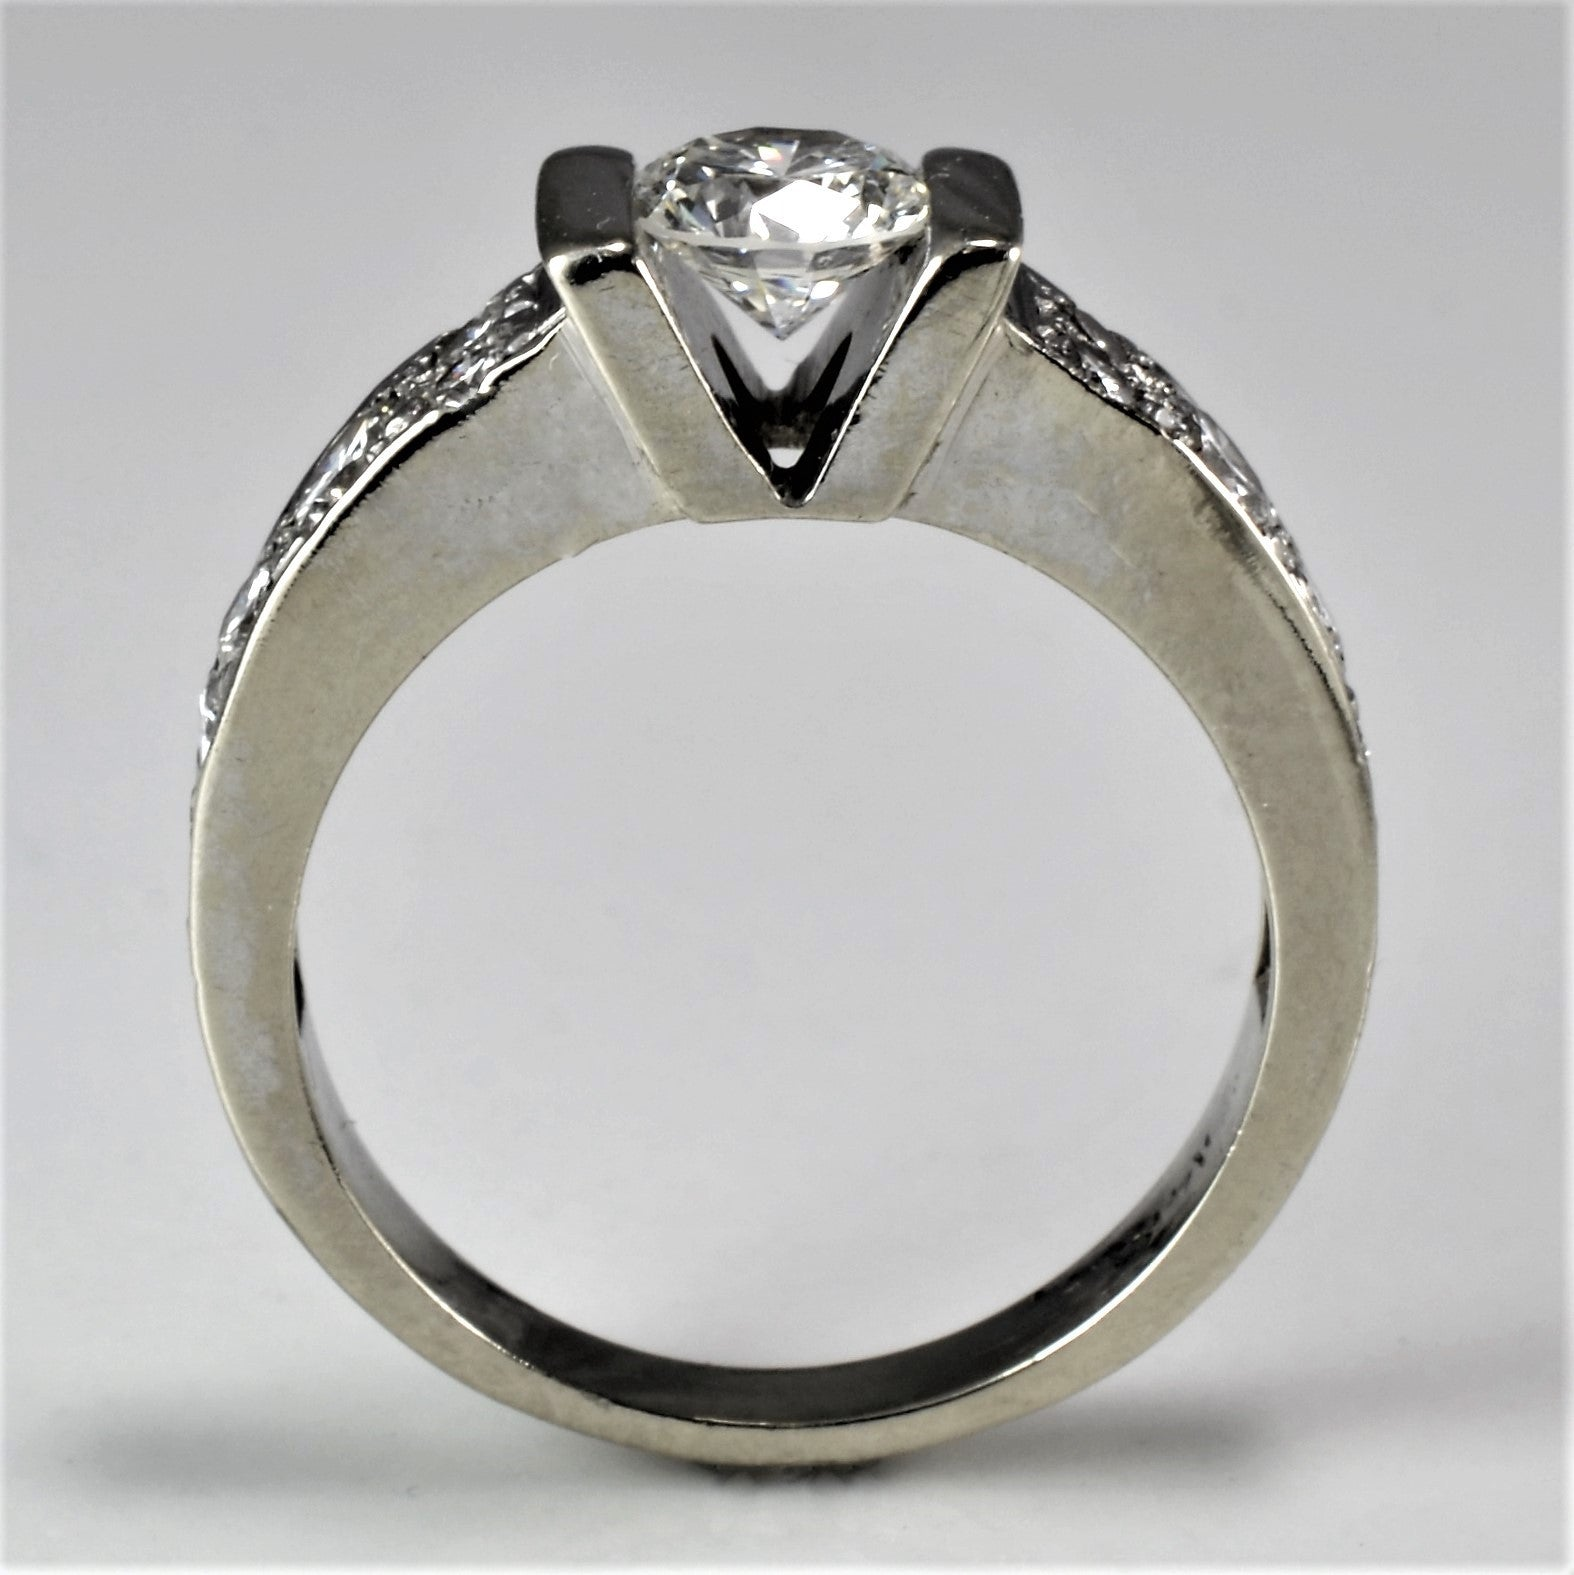 Wide Band Tension Set Engagement Ring | 0.90 ctw | SZ 4.75 |